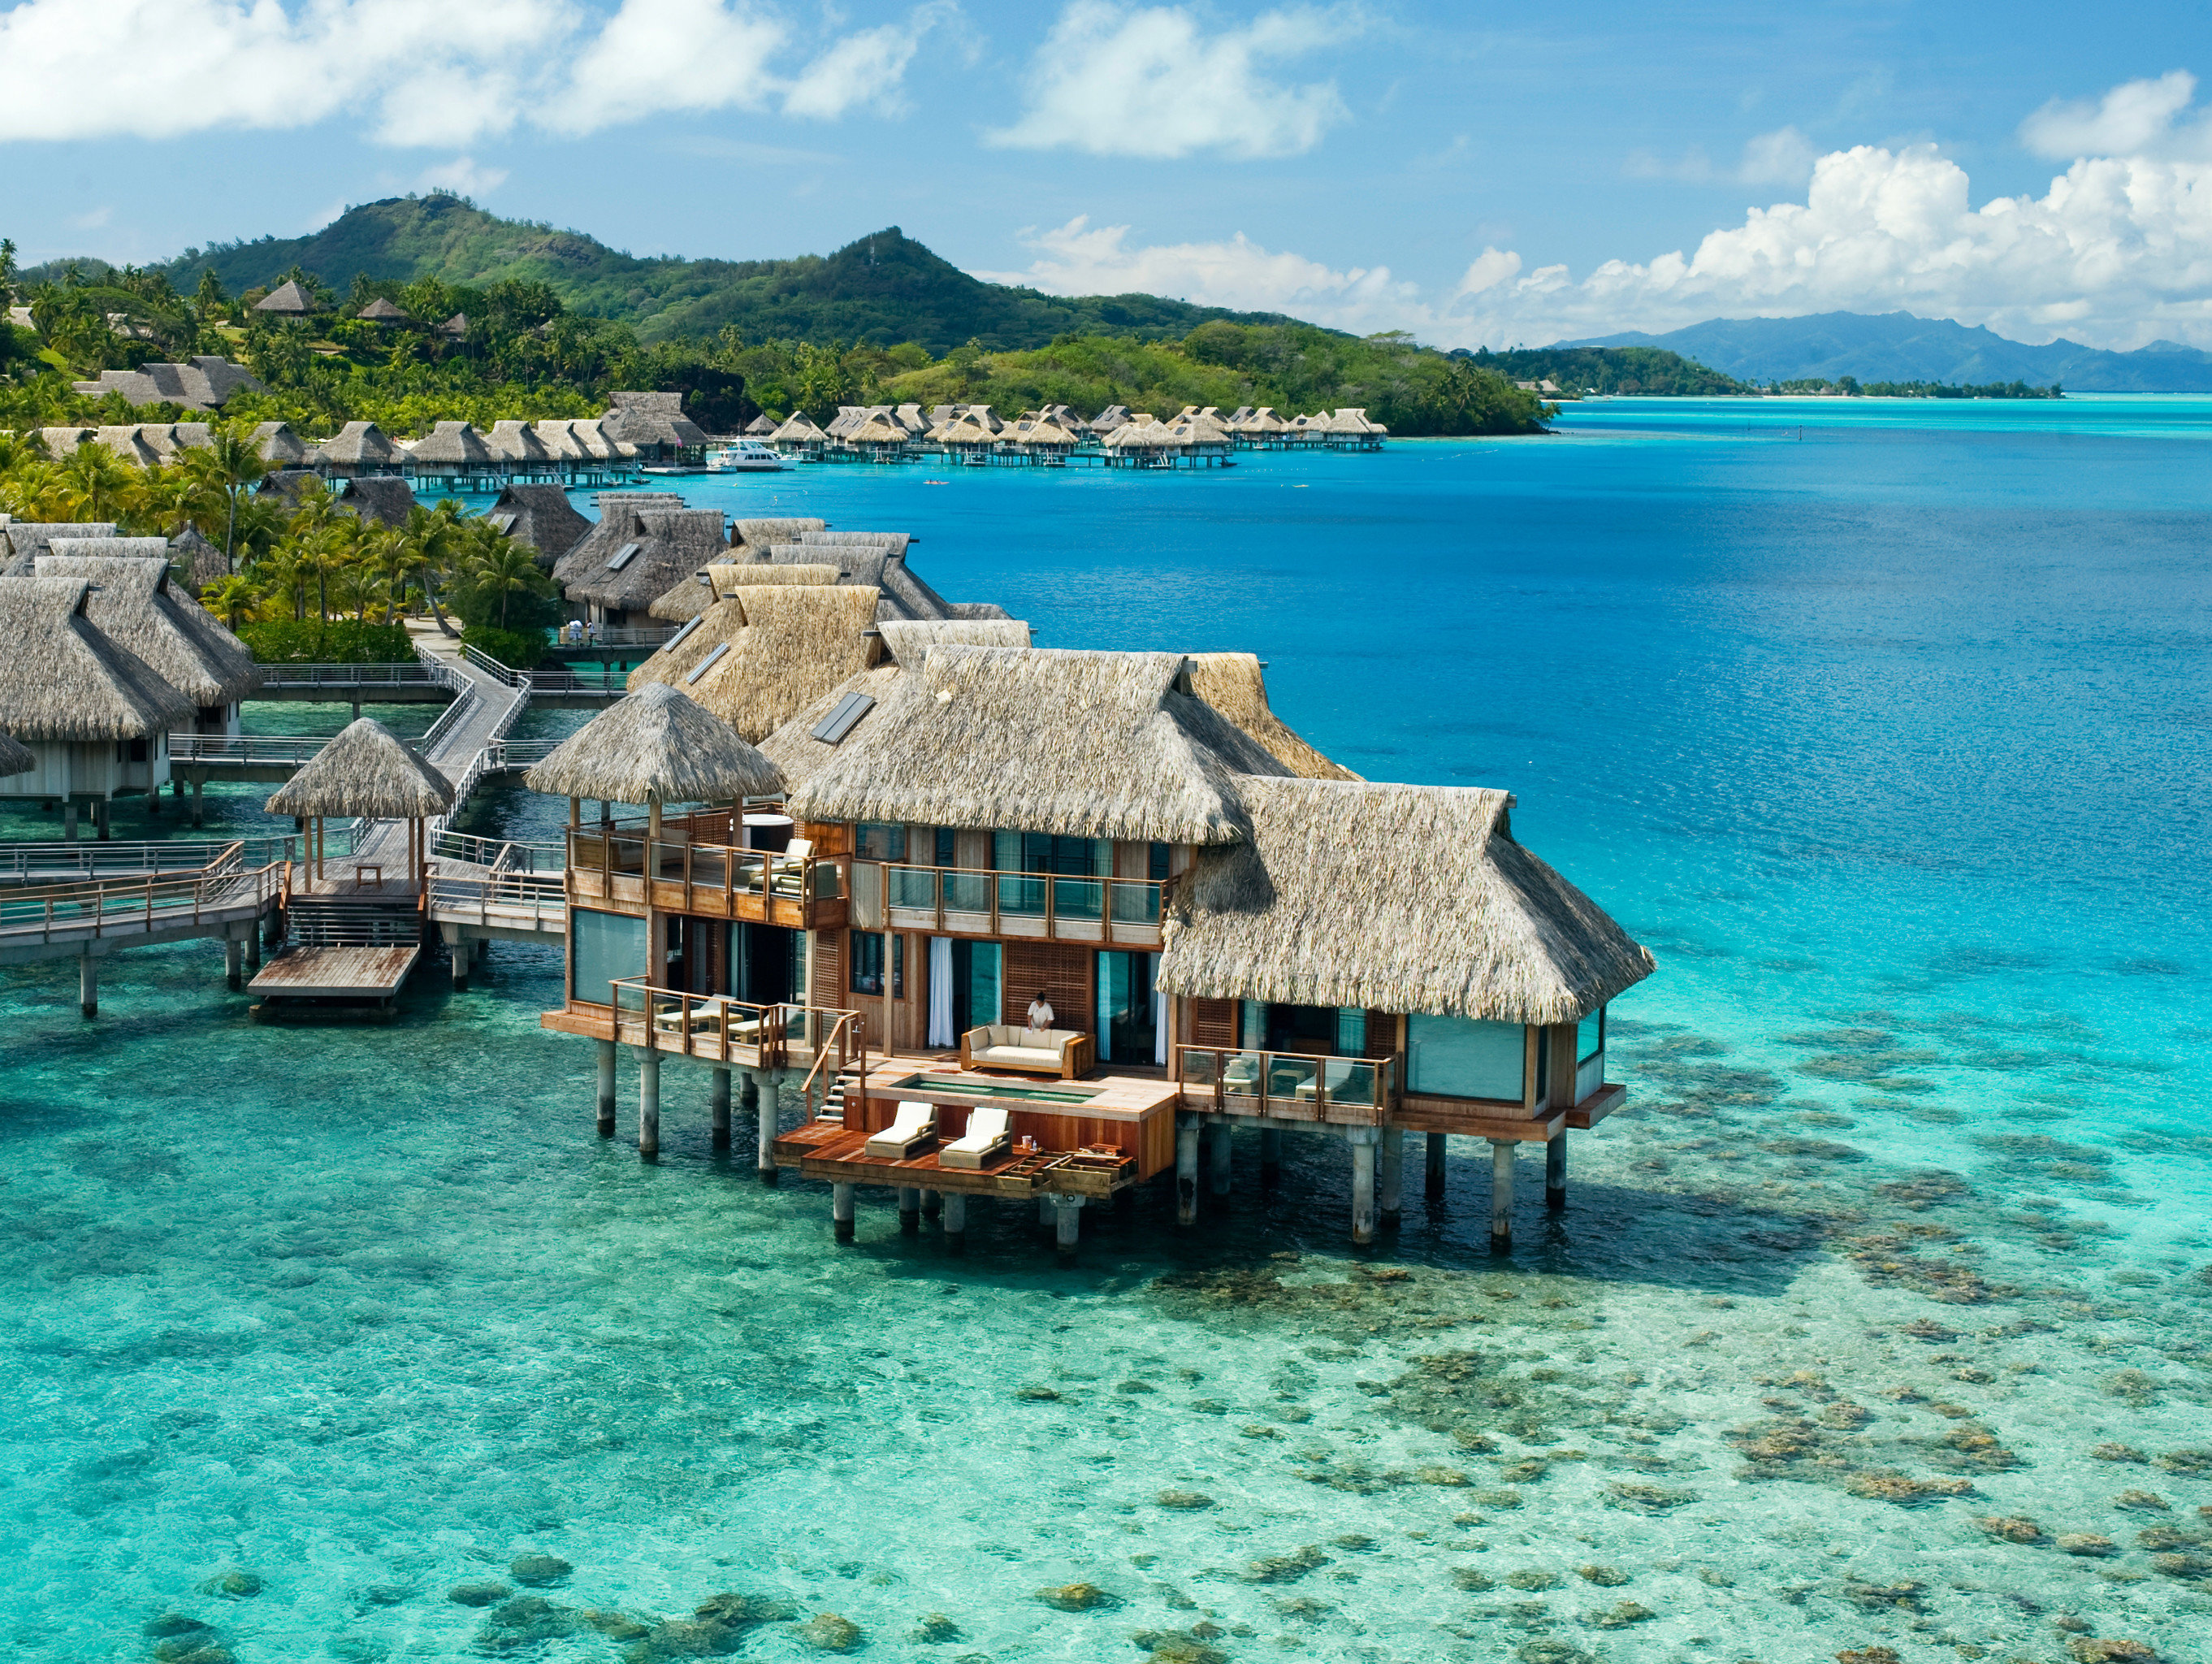 Boutique Hotels Hotels Luxury Travel water sky outdoor mountain Sea geographical feature landform house Boat caribbean body of water archipelago vacation Ocean Beach Coast Island Resort bay Lagoon islet resort town cove blue swimming pool cape tropics Harbor cay overlooking shore swimming